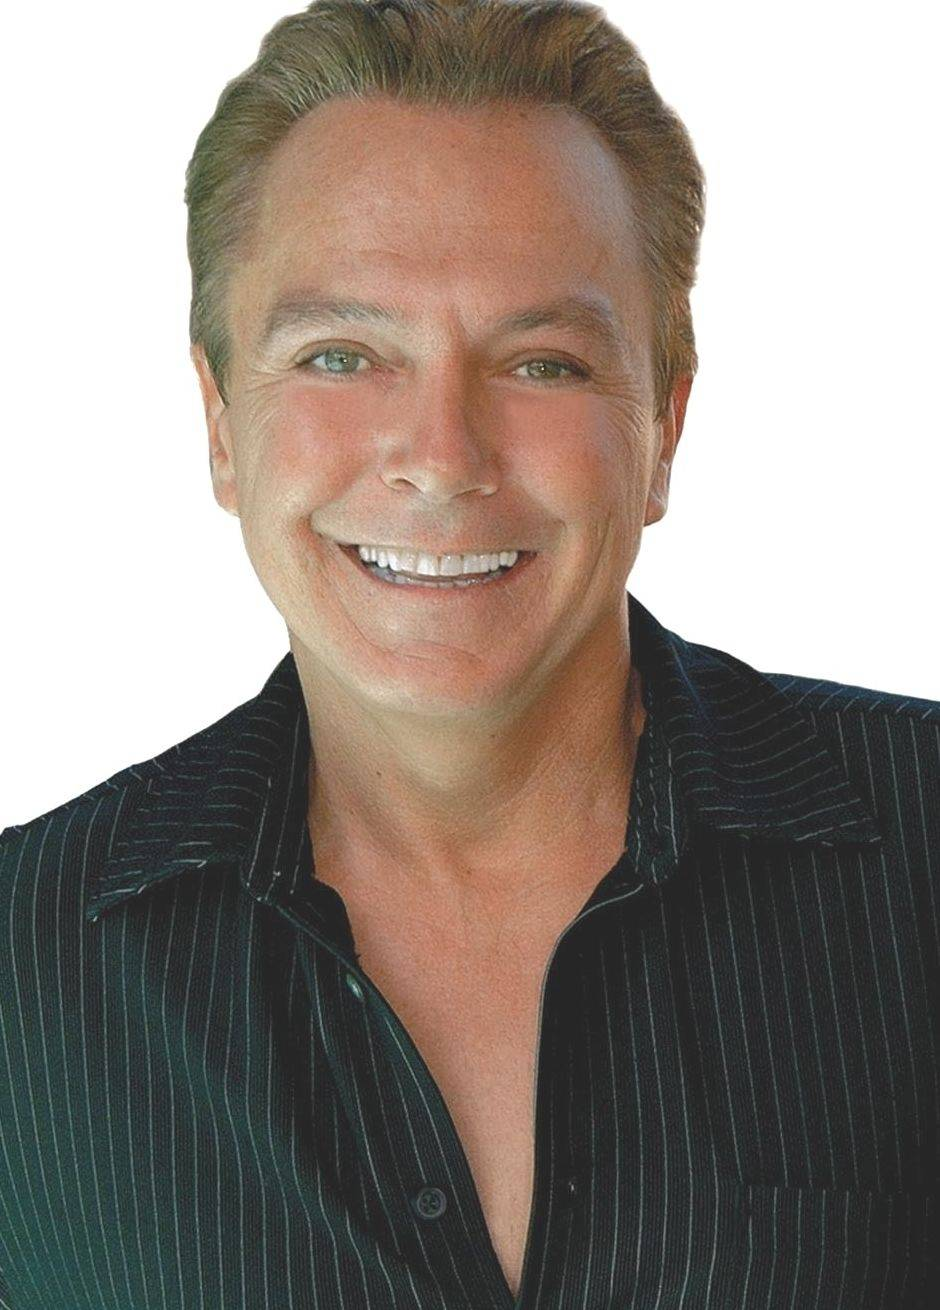 Singer David Cassidy headlines at 9:30 p.m. on Saturday, July 14, at the annual Des Plaines Summer Fling festival.